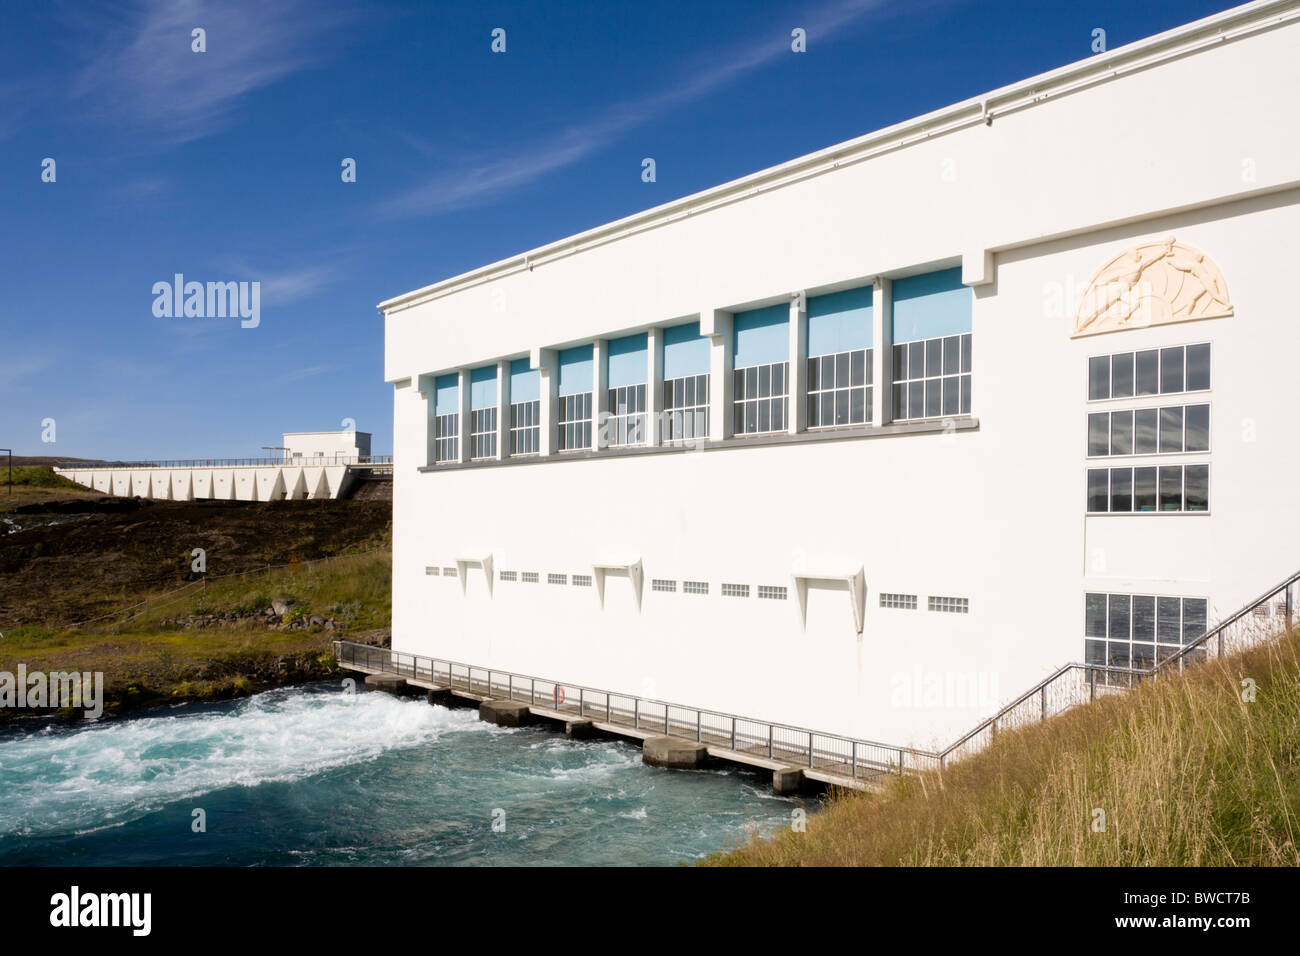 Ljosafoss hydroelectric powerplant in Sogid river, built 1937. South Iceland. - Stock Image